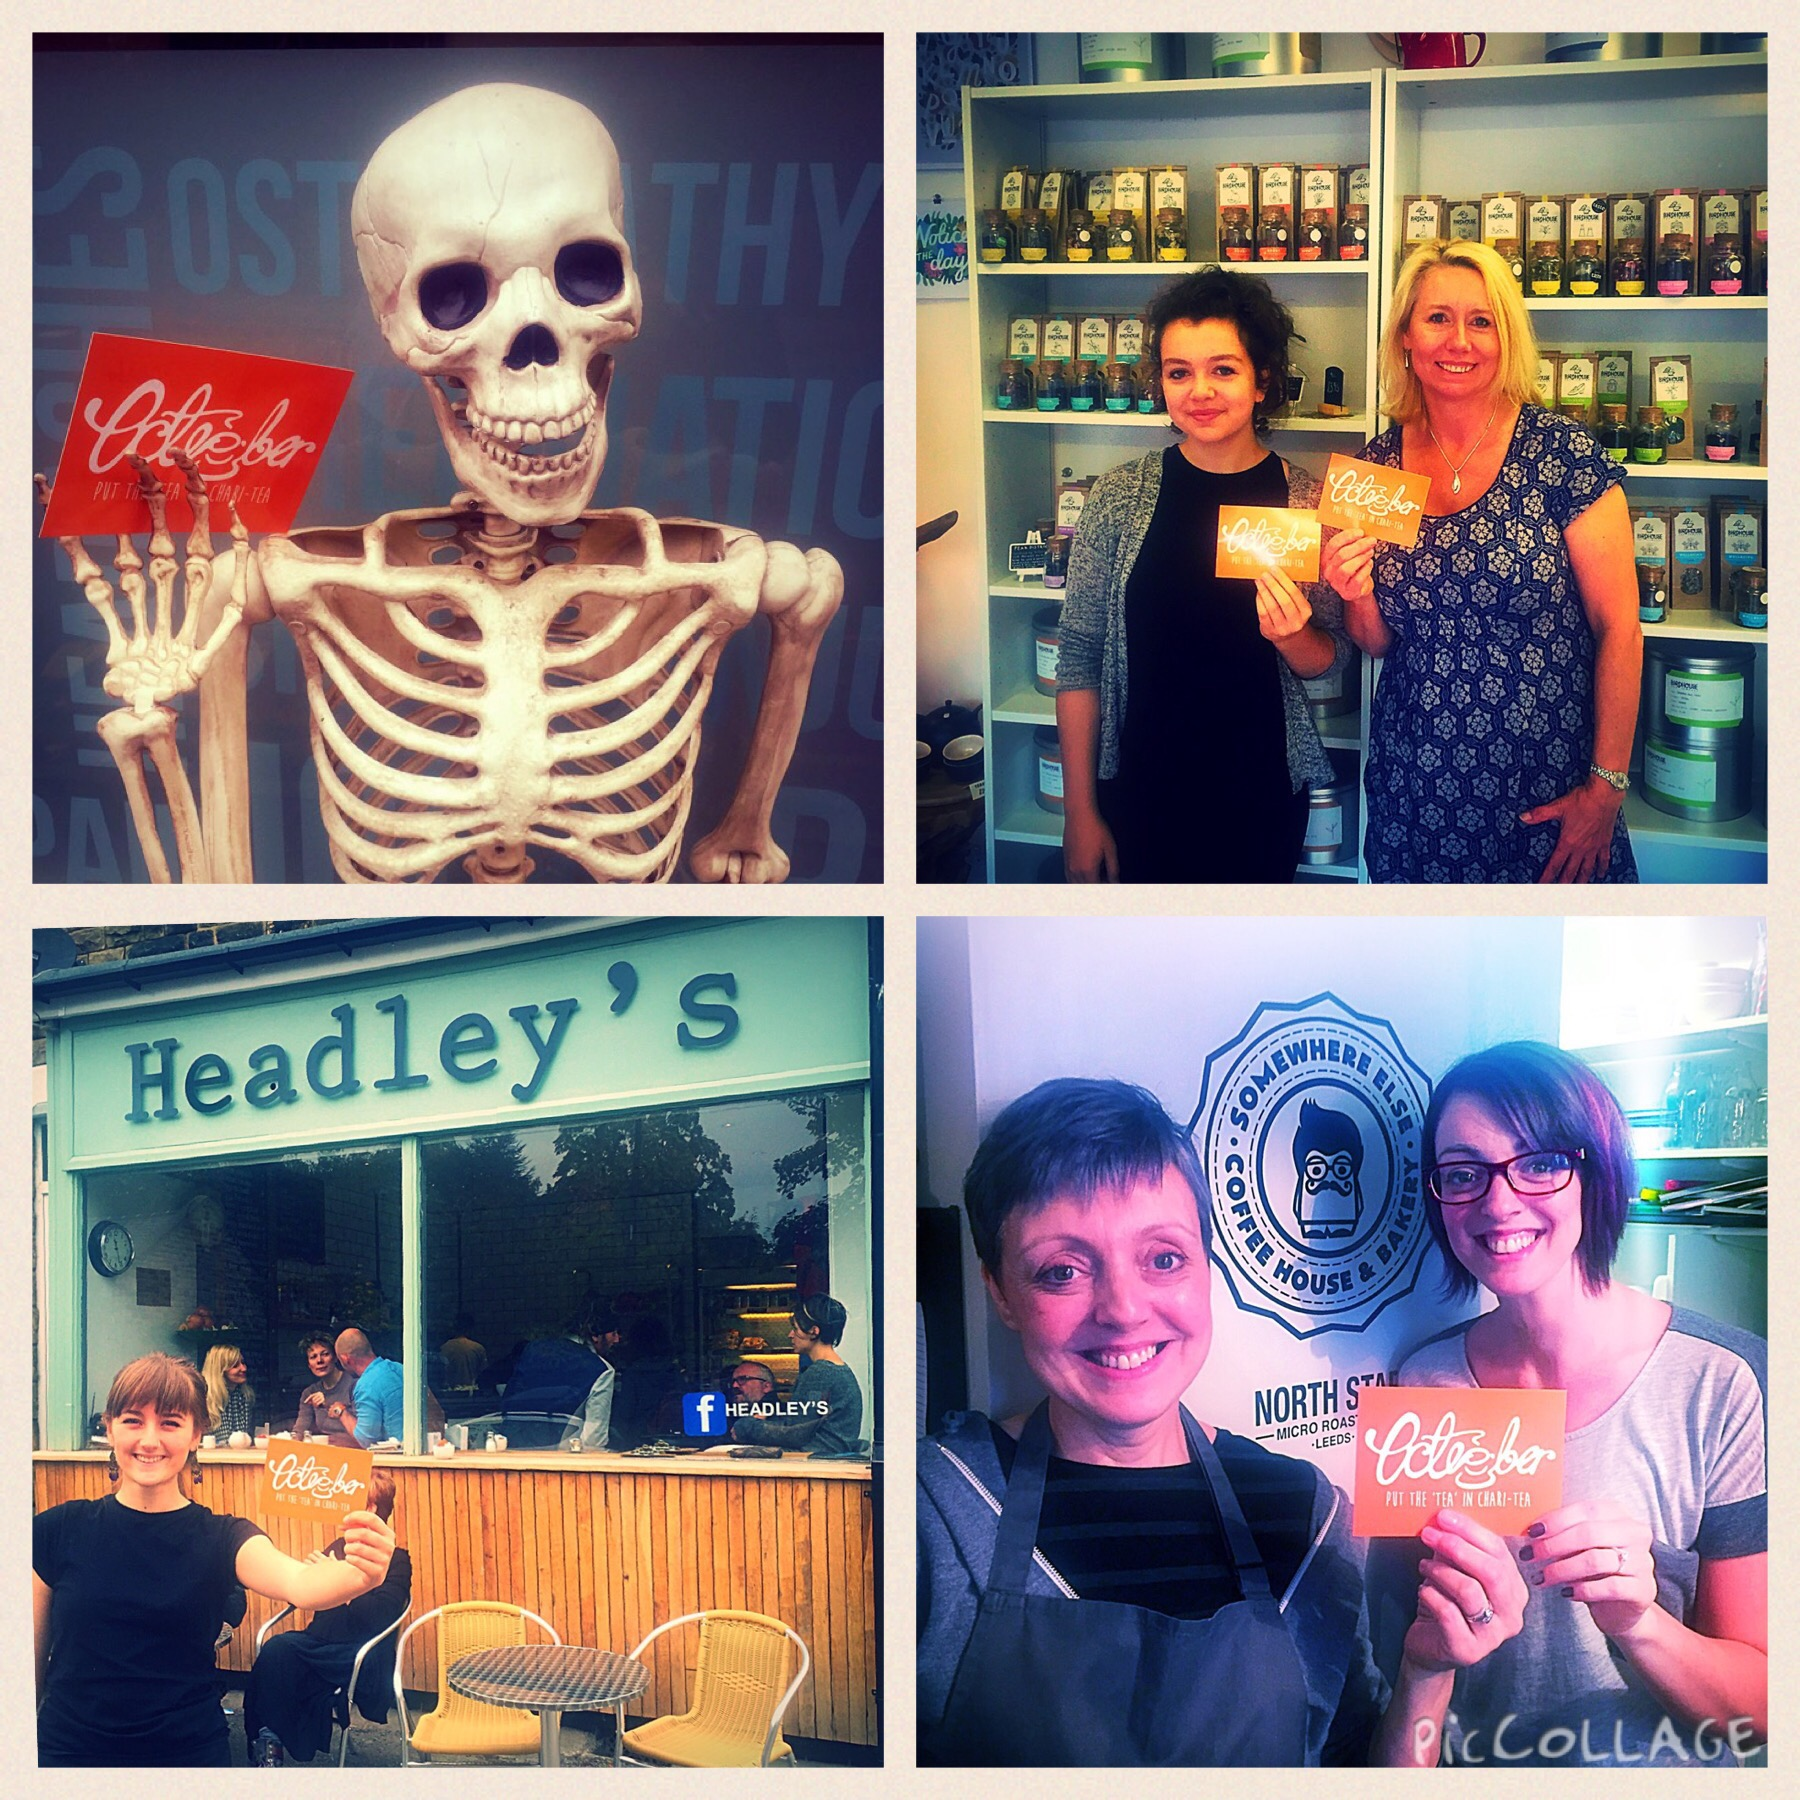 9. Char-lie from Nether Edge 9. Maisie and Julie from Birdhouse 10. Sabella from Headley's 11. Lovelies at Somewhere Else Coffee House